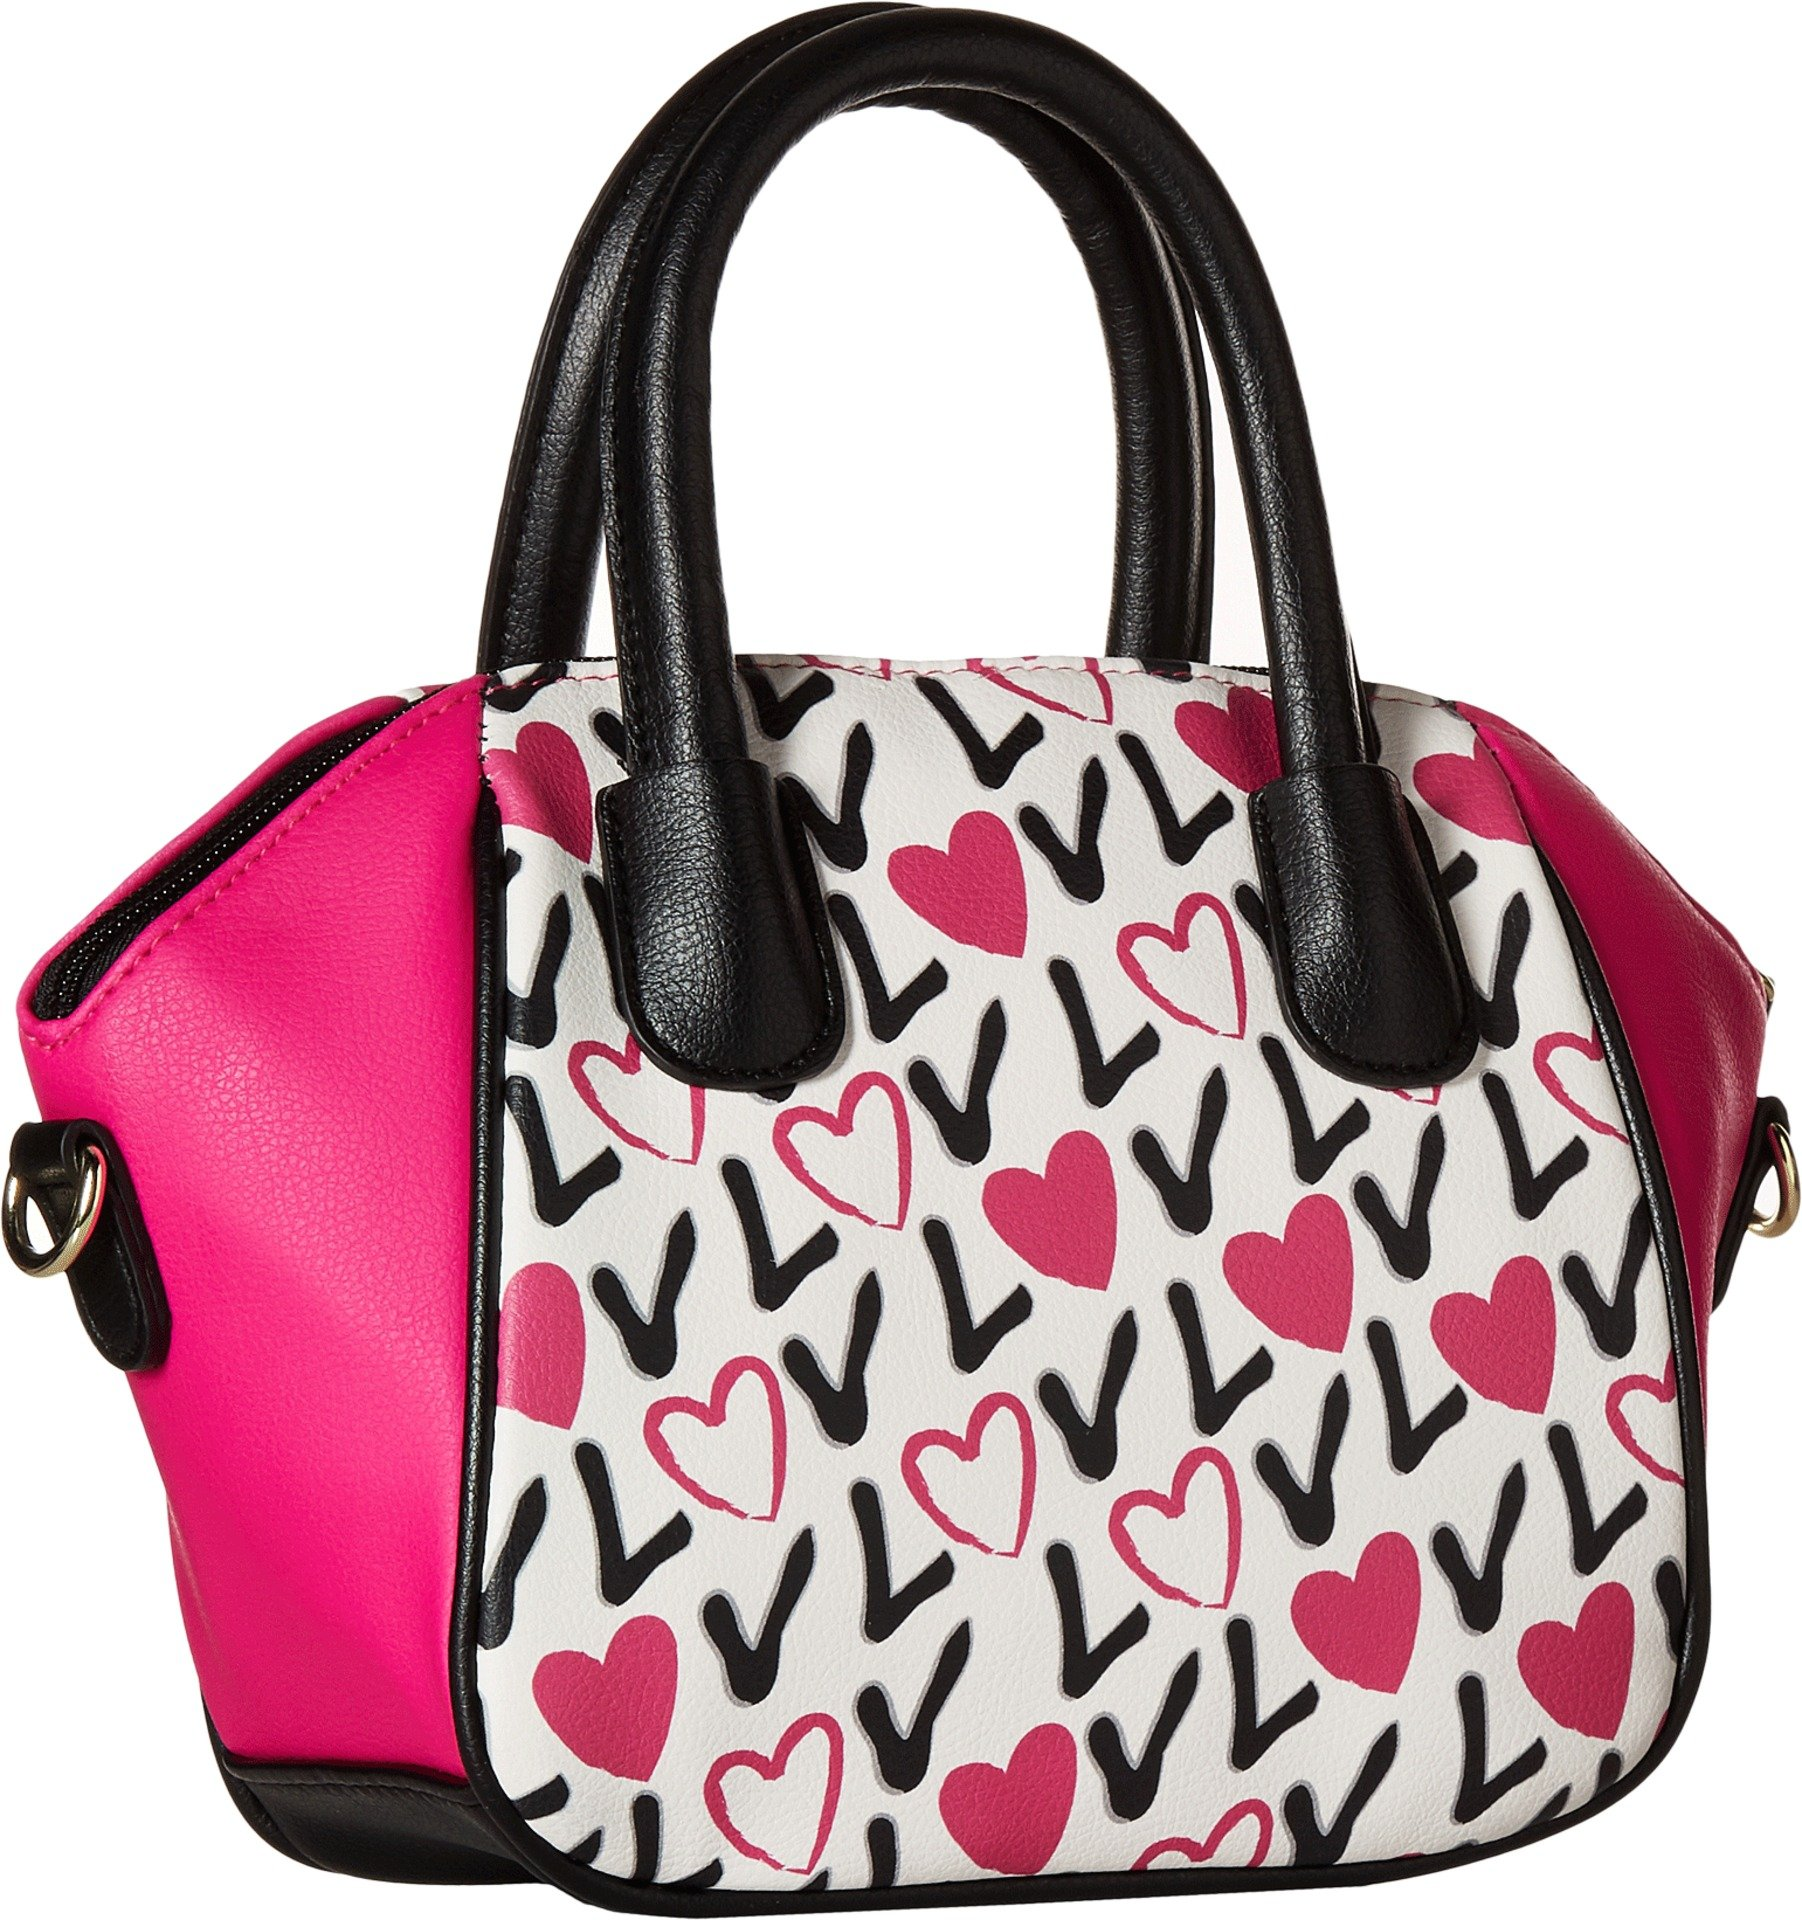 Luv Betsey Women's Quinn Mini Size PVC Satchel Love Pink-Az One Size by Luv Betsey (Image #2)